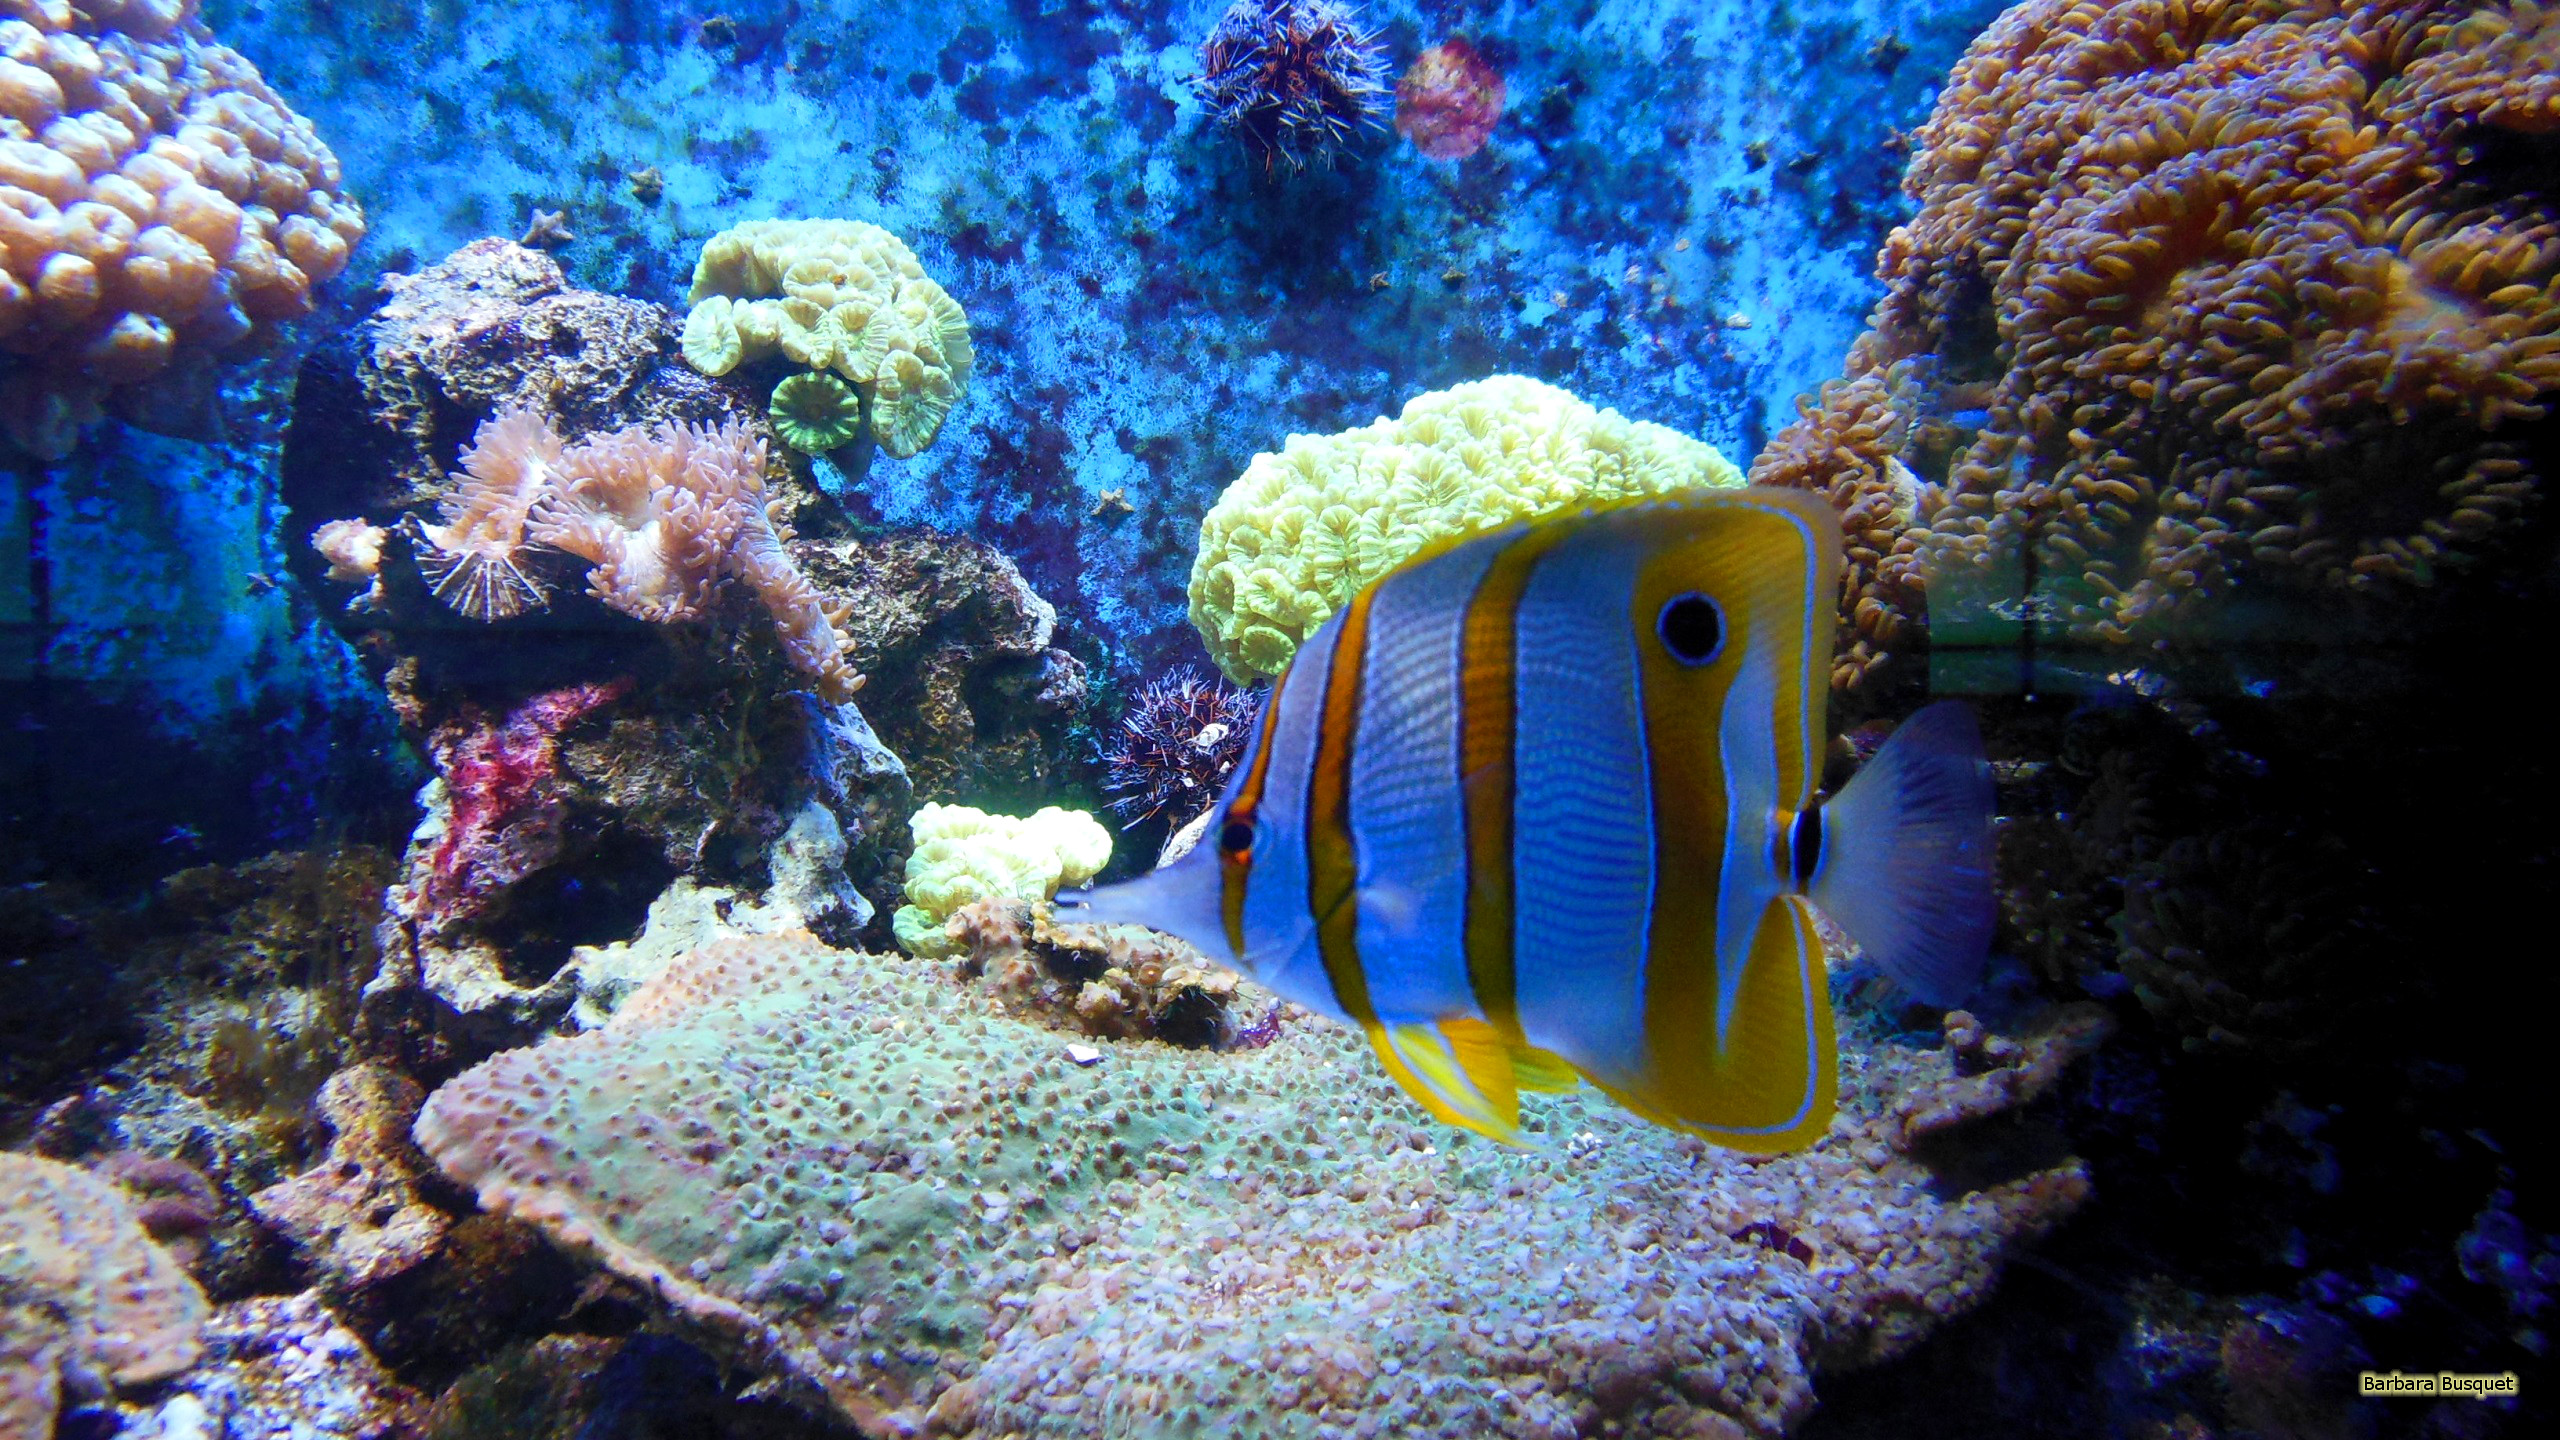 Fall In Love Mobile Wallpaper Tropical Fish And Anemones Barbaras Hd Wallpapers